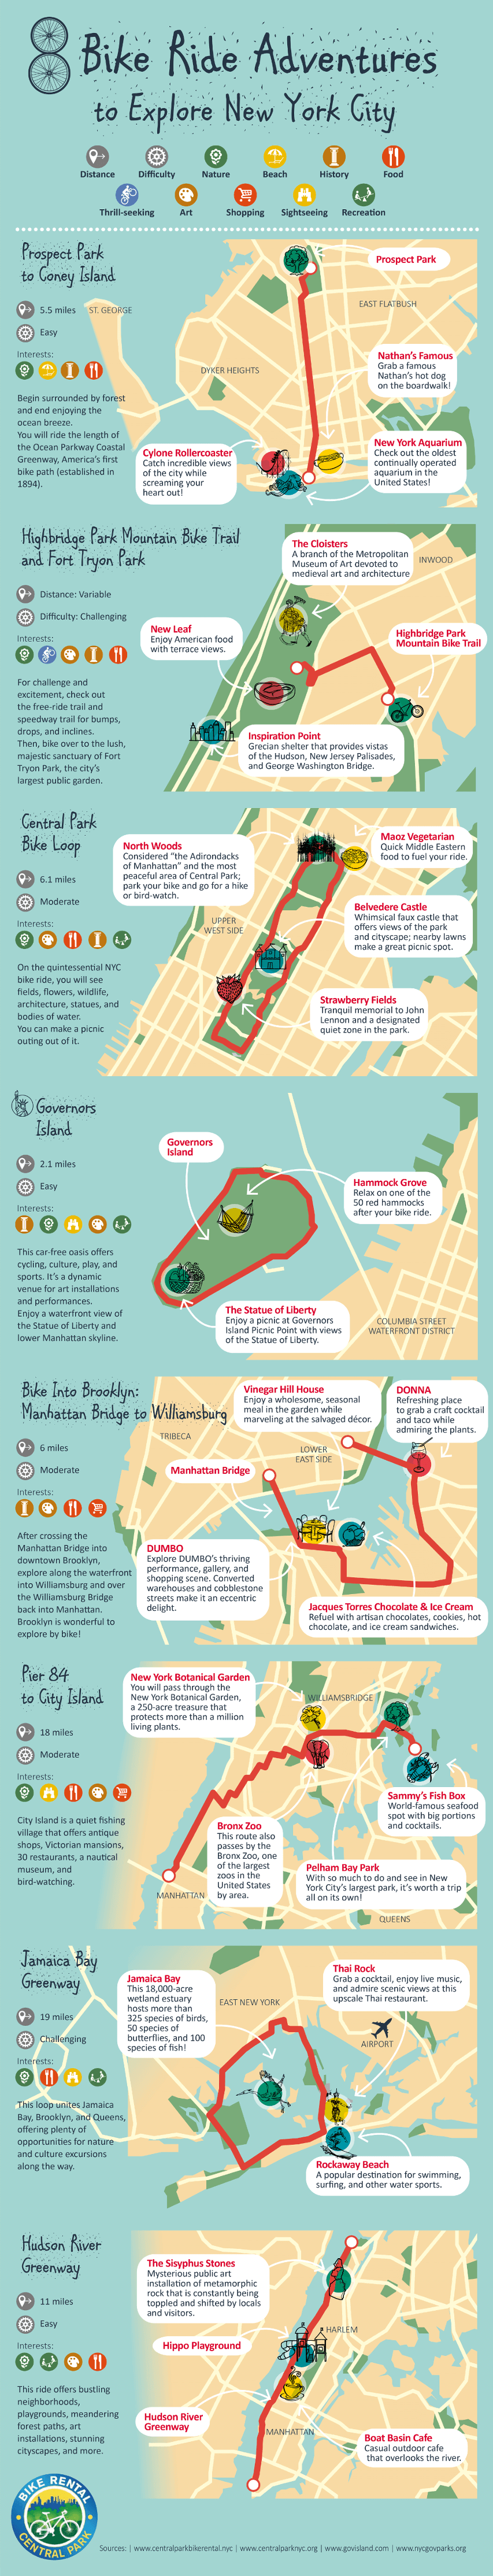 Bike Ride Adventures to Explore New York City - CentralParkBikeRental.nyc - Infographic